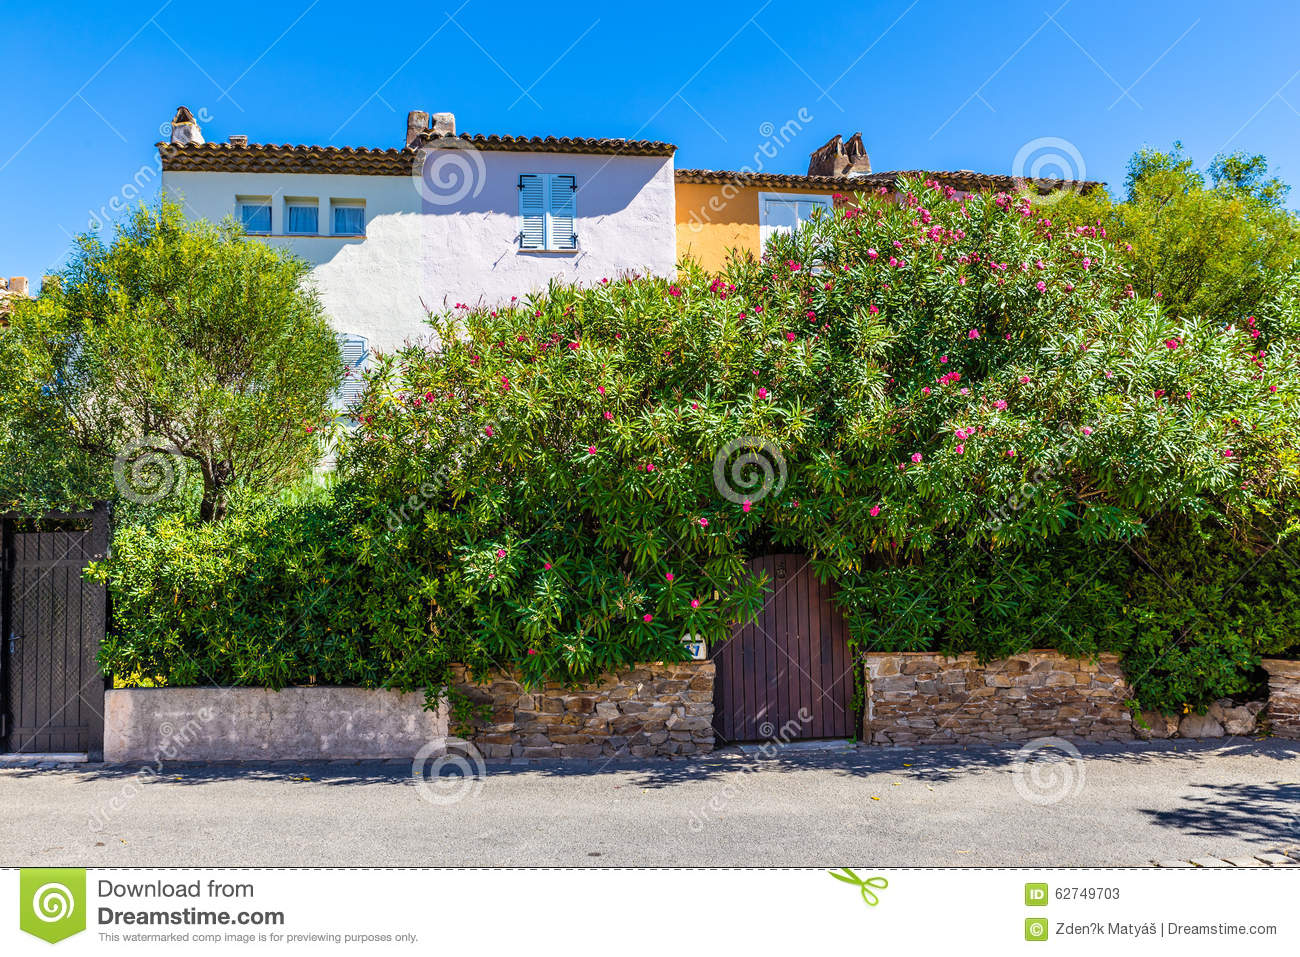 Colorful Houses And Plants In Port Grimaud-France